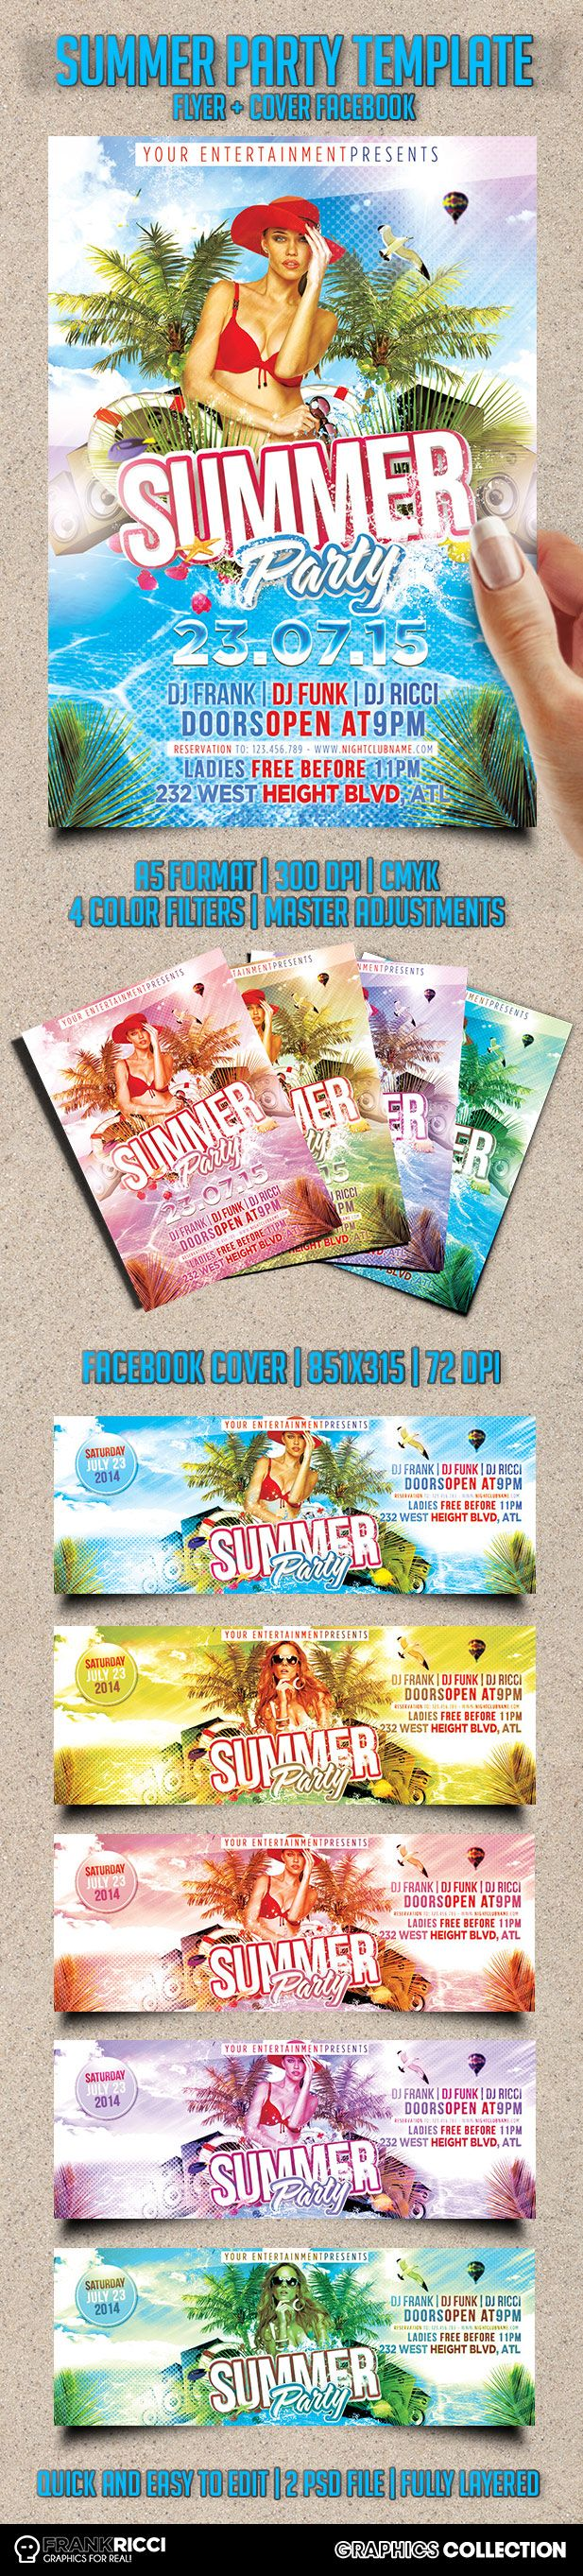 Flyer & Facebook Cover Summer Party - New template available on http://frankricci.it/summer-party-01/